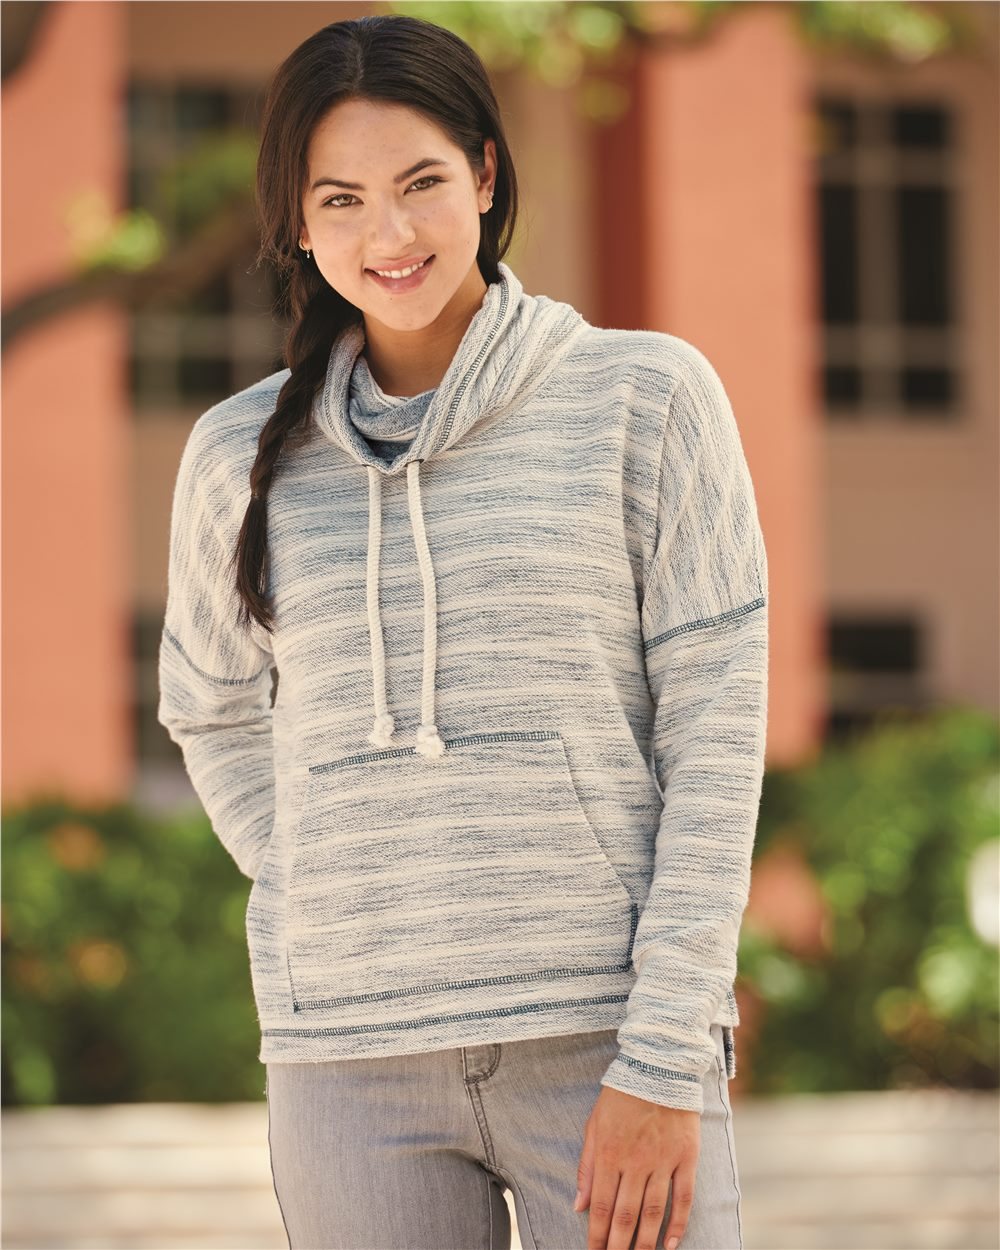 J. America 8693 - Baja Women's French Terry Cowlneck Pullover